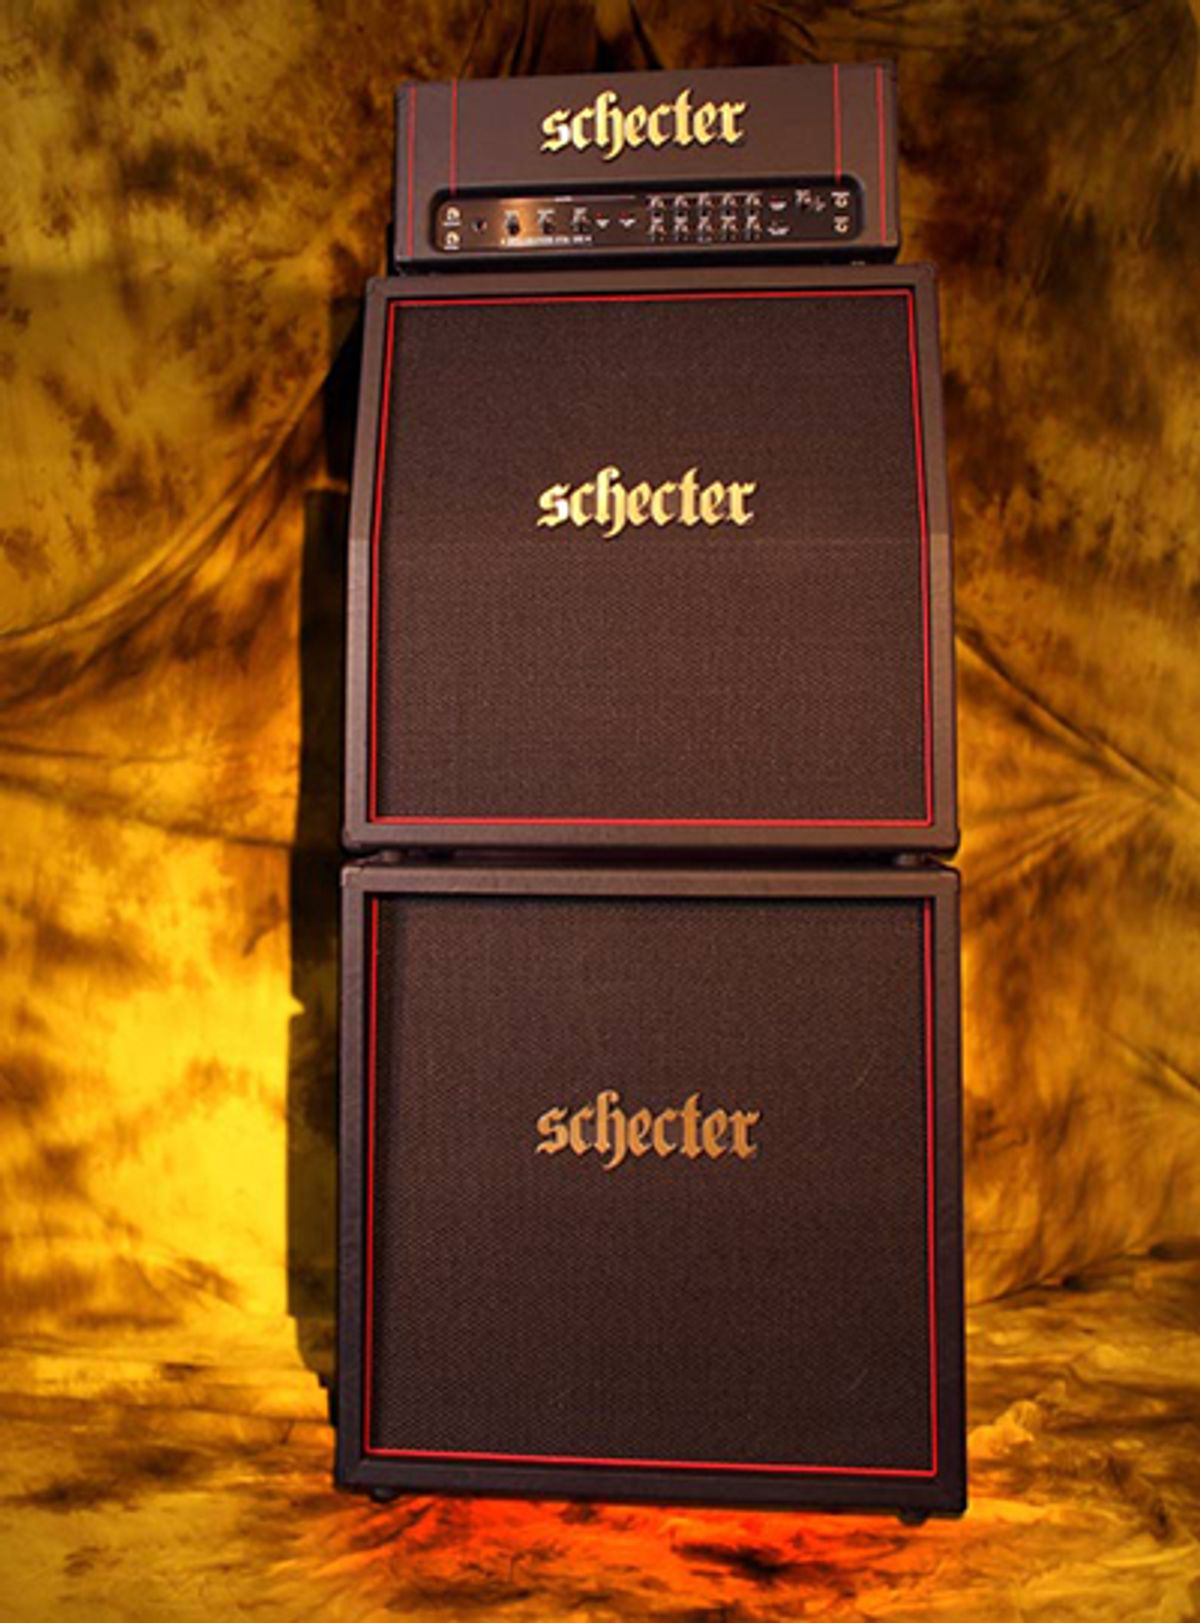 Schecter Releases Intial Details on Hellraiser Amps